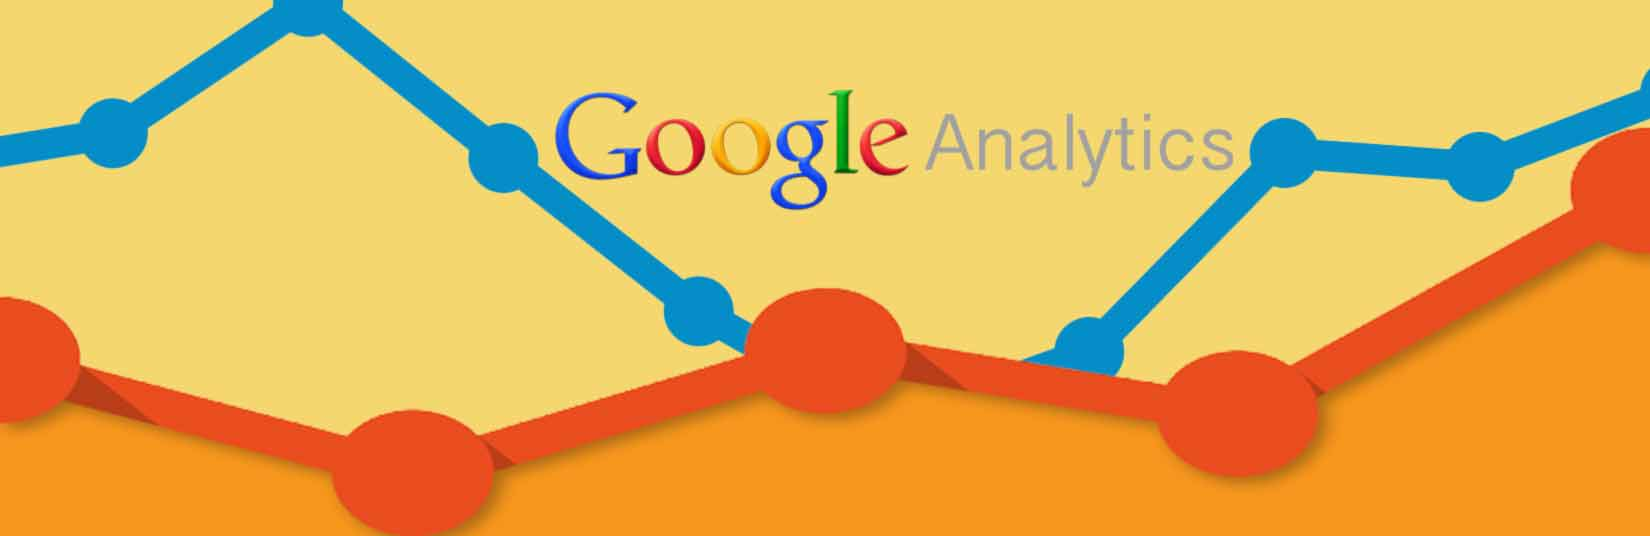 Google Analytics, GA